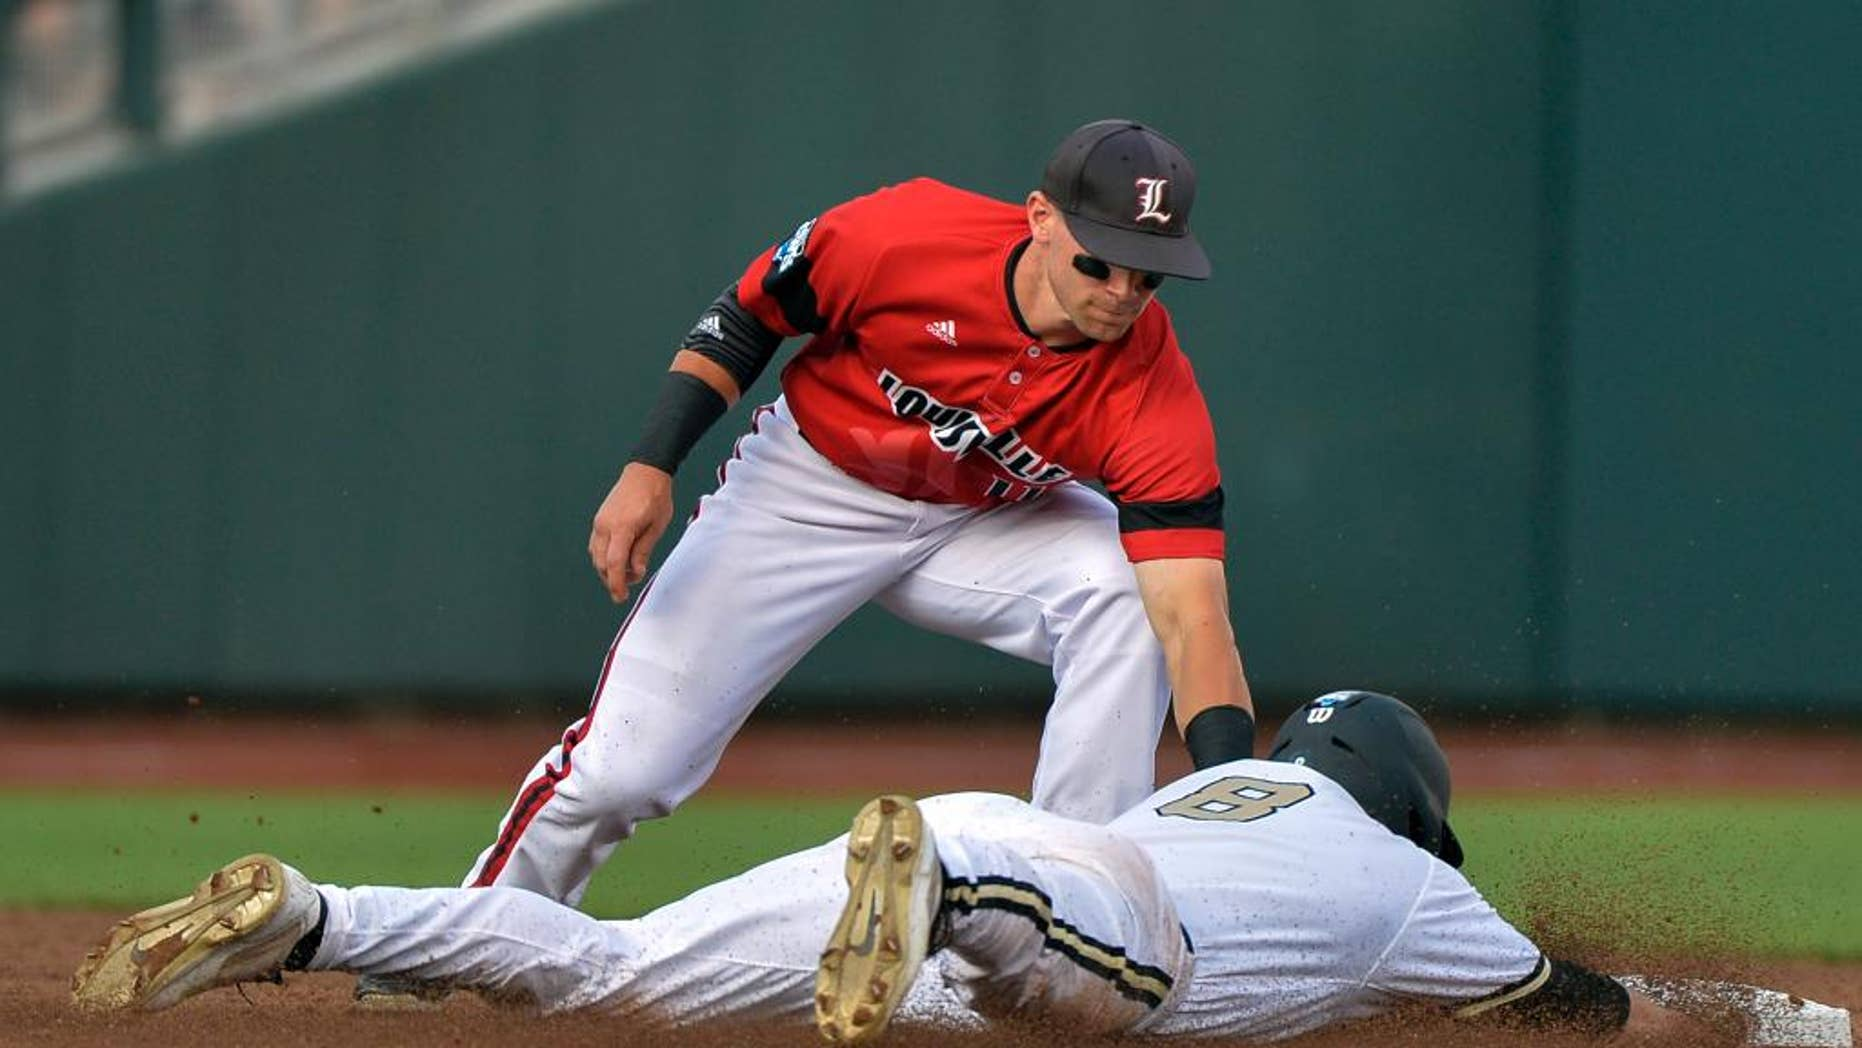 Vanderbilt's Rhett Wiseman (8) is caught stealing second base by Louisville second baseman Zach Lucas, top, in the second inning of an NCAA baseball College World Series game in Omaha, Neb., Saturday, June 14, 2014. (AP Photo/Ted Kirk)